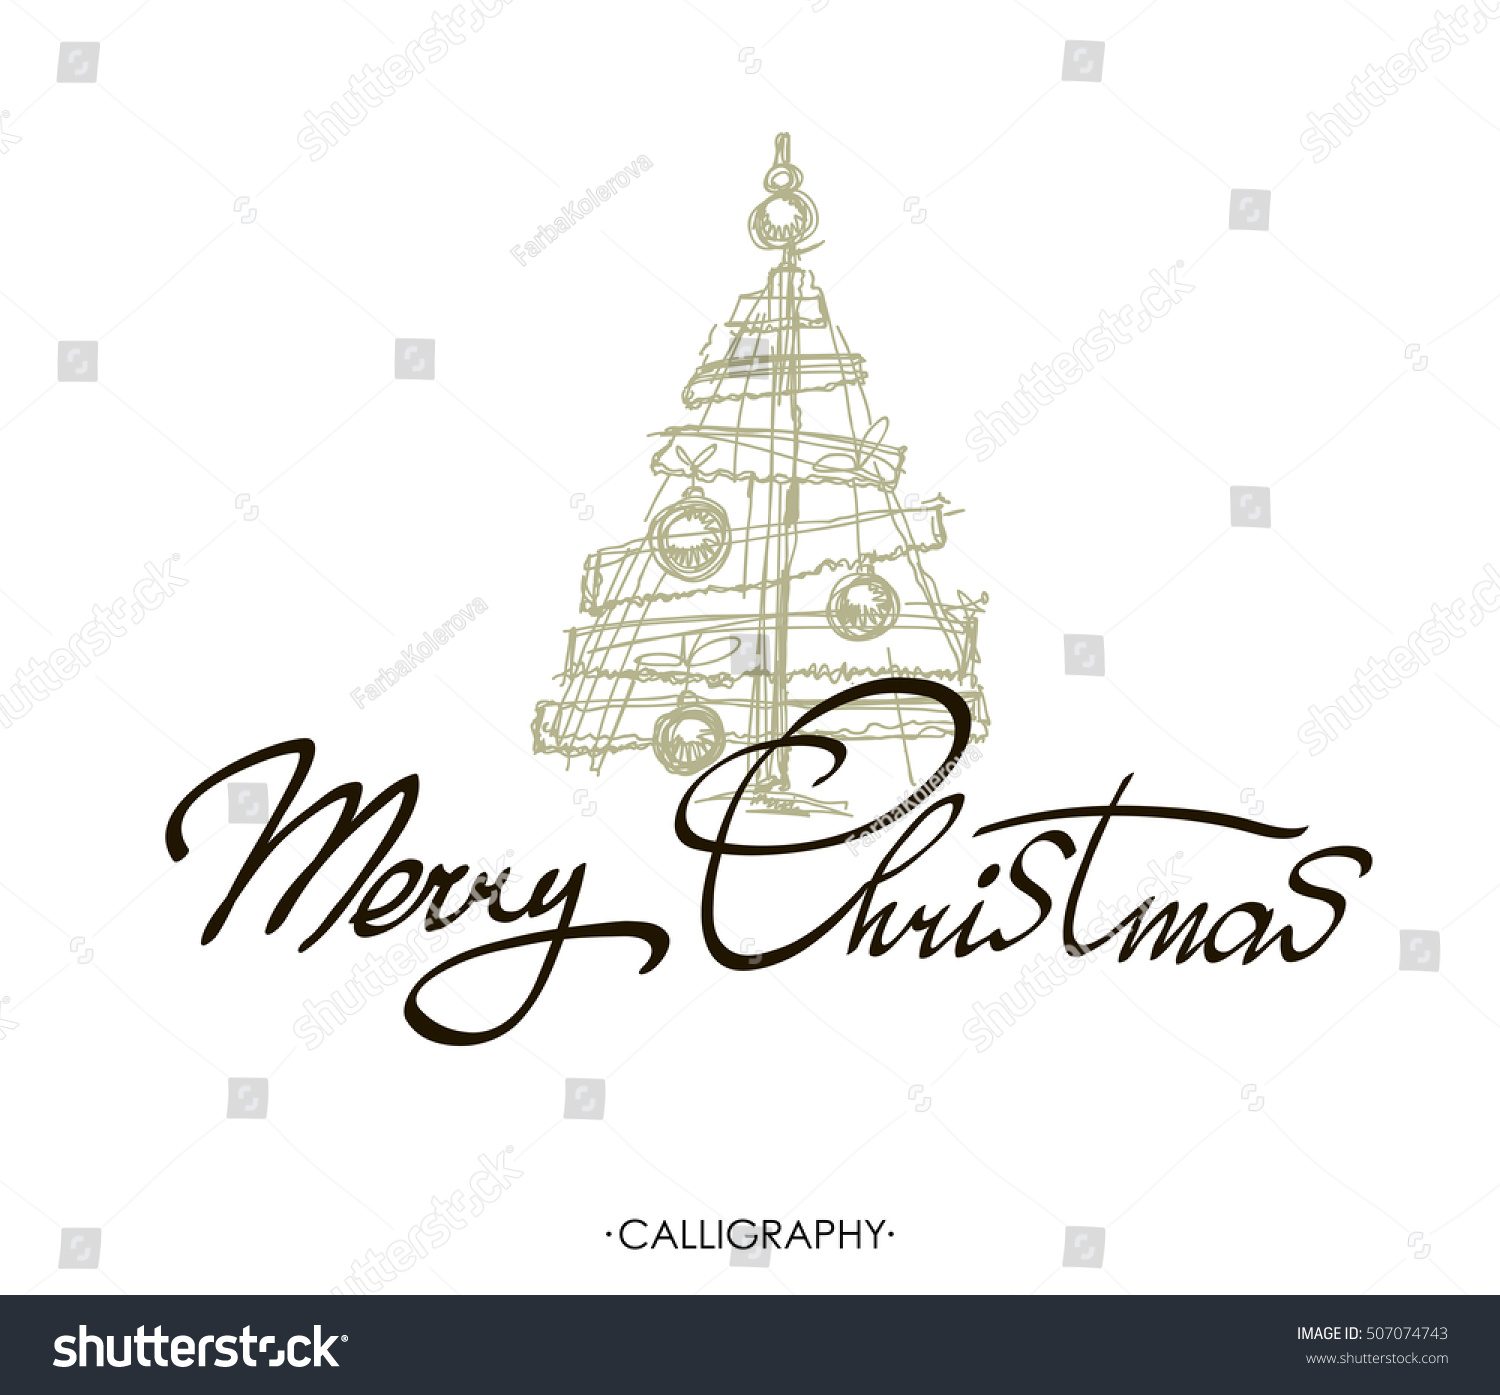 Merry christmas greeting card calligraphy merry stock vector merry christmas greeting card with calligraphy merry christmas text design vector logo typography kristyandbryce Image collections